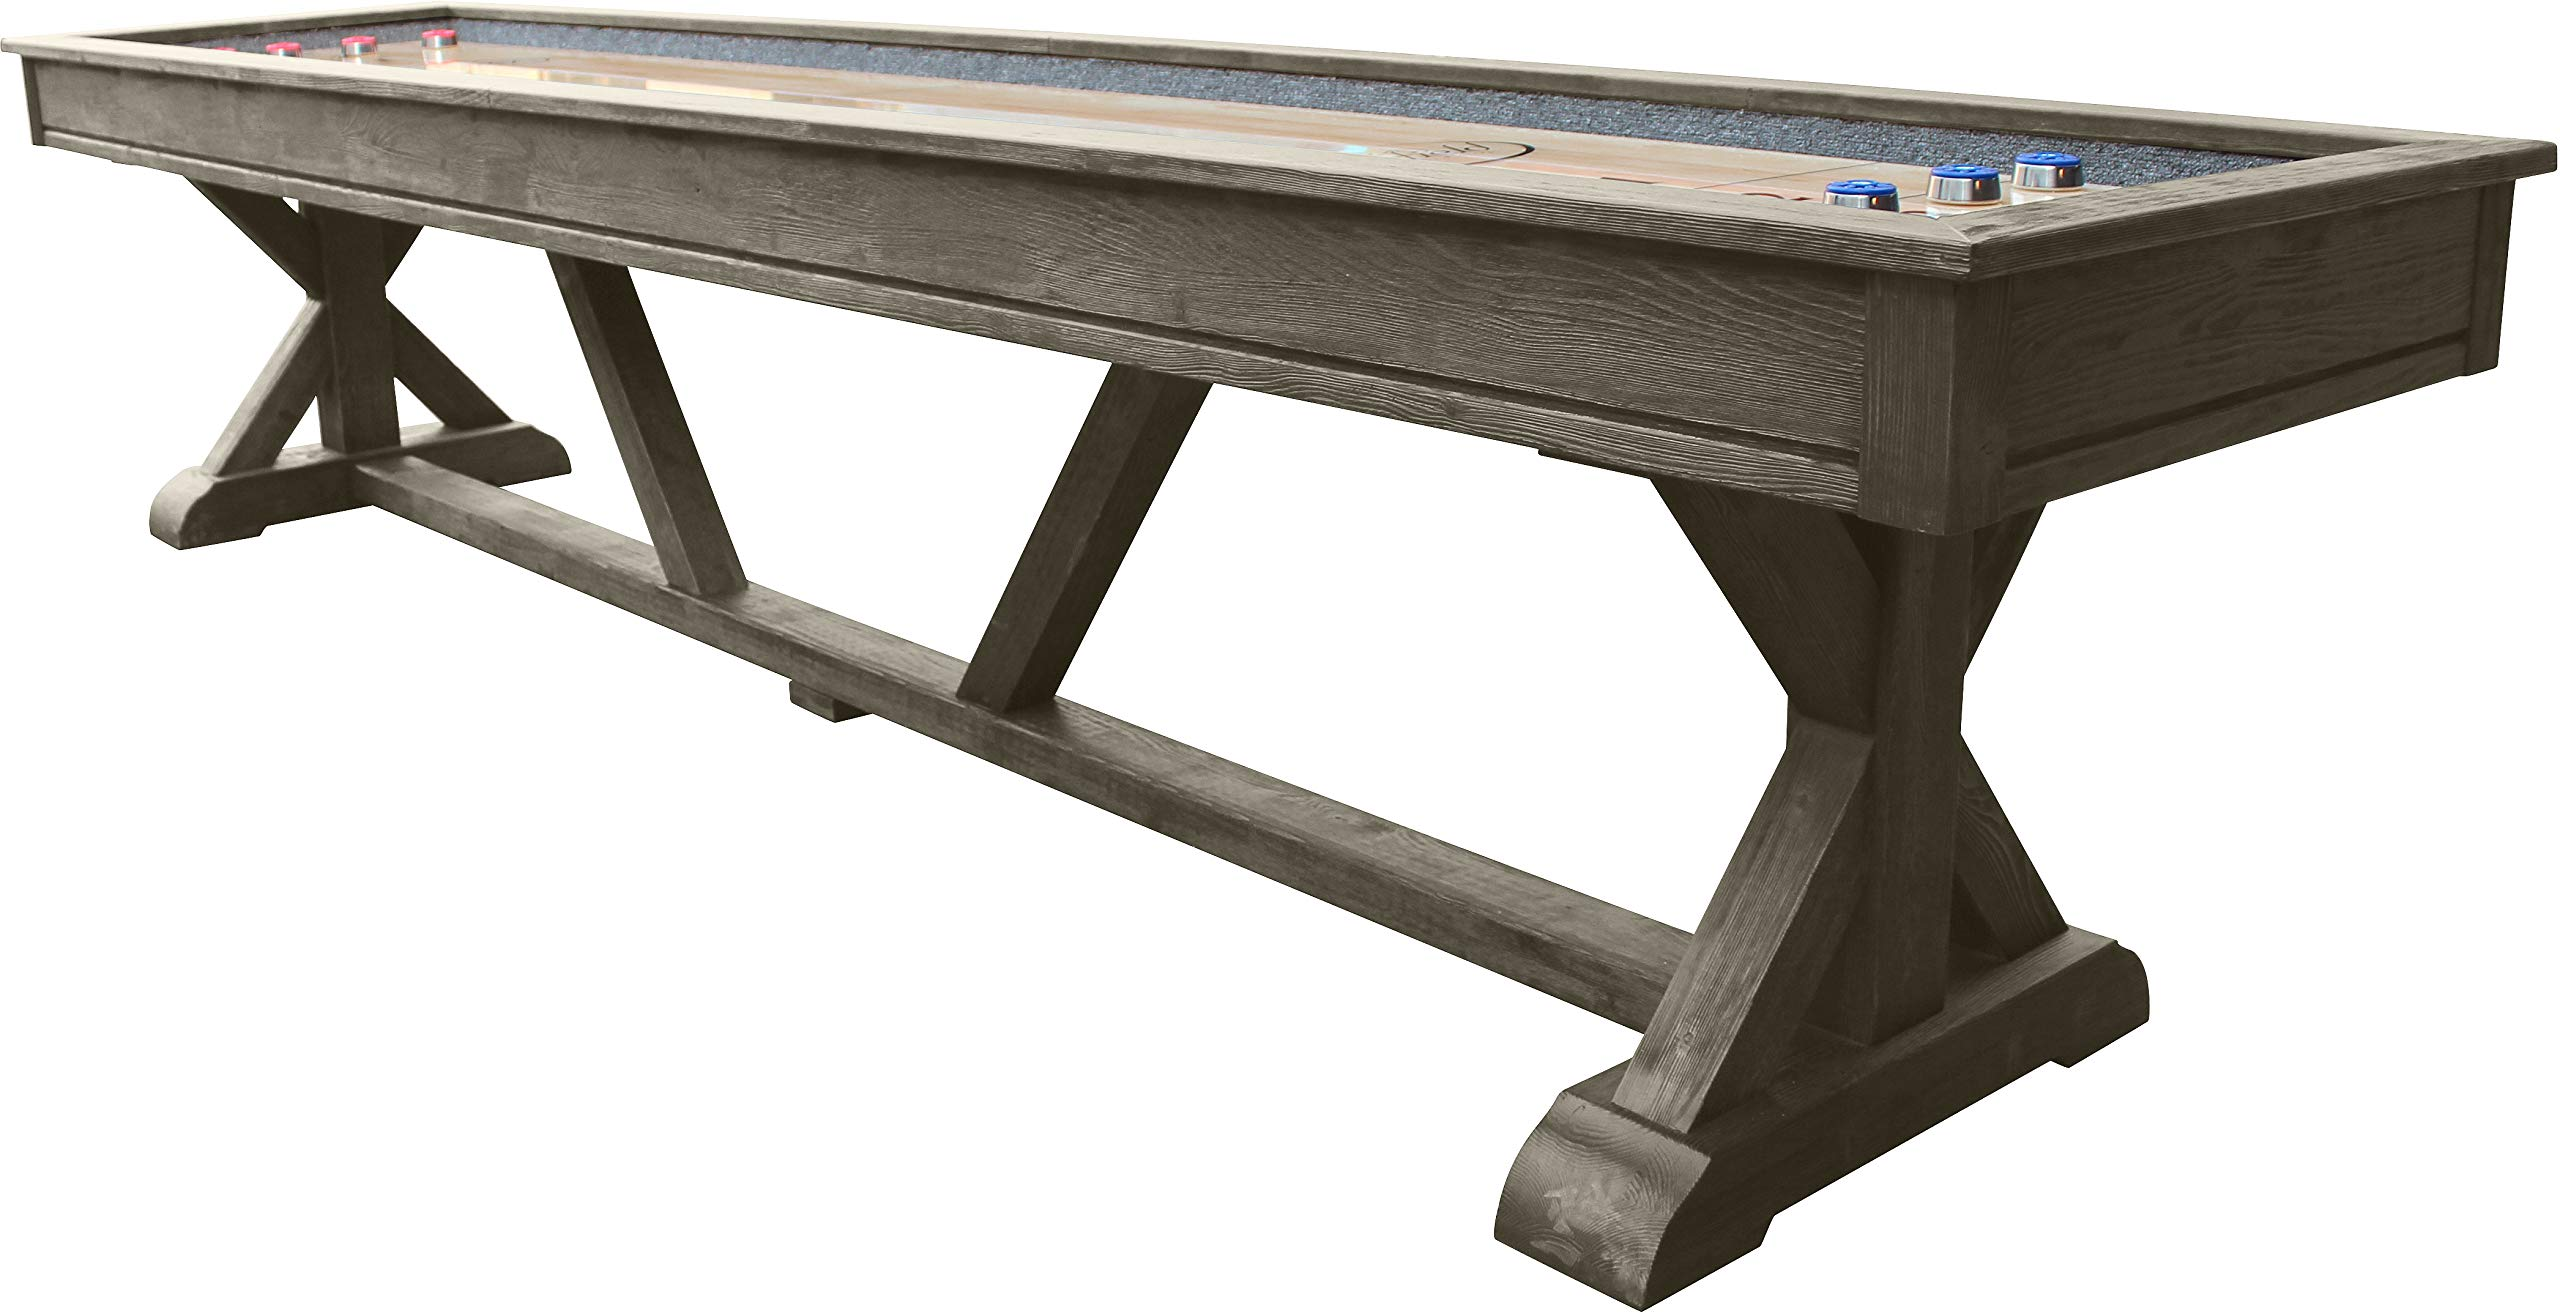 Playcraft Brazos River 12' Weathered Gray Pro-Style Shuffleboard Table by Playcraft